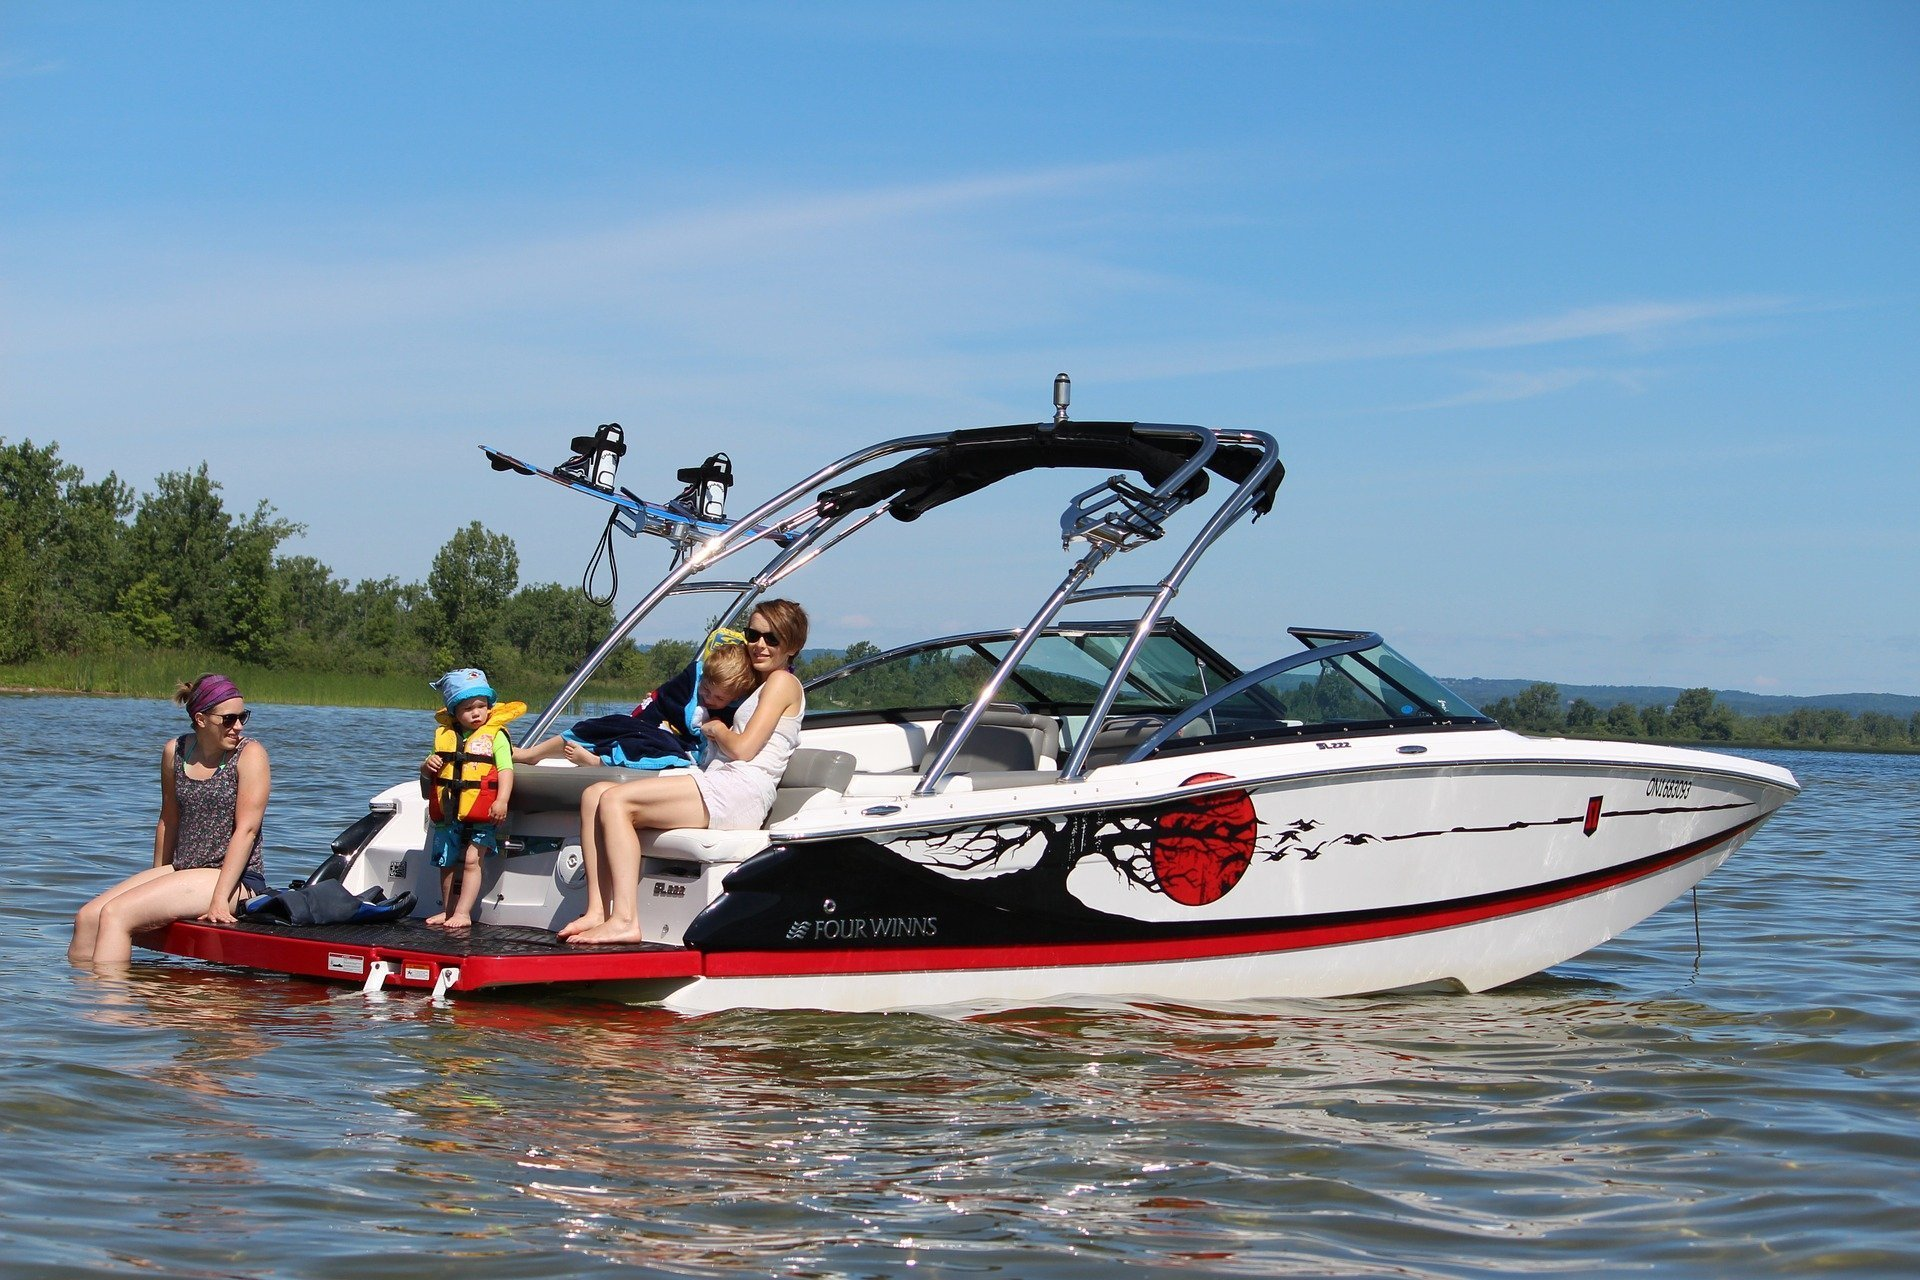 Where should you store your boat west coast self storage for Boat garage on water